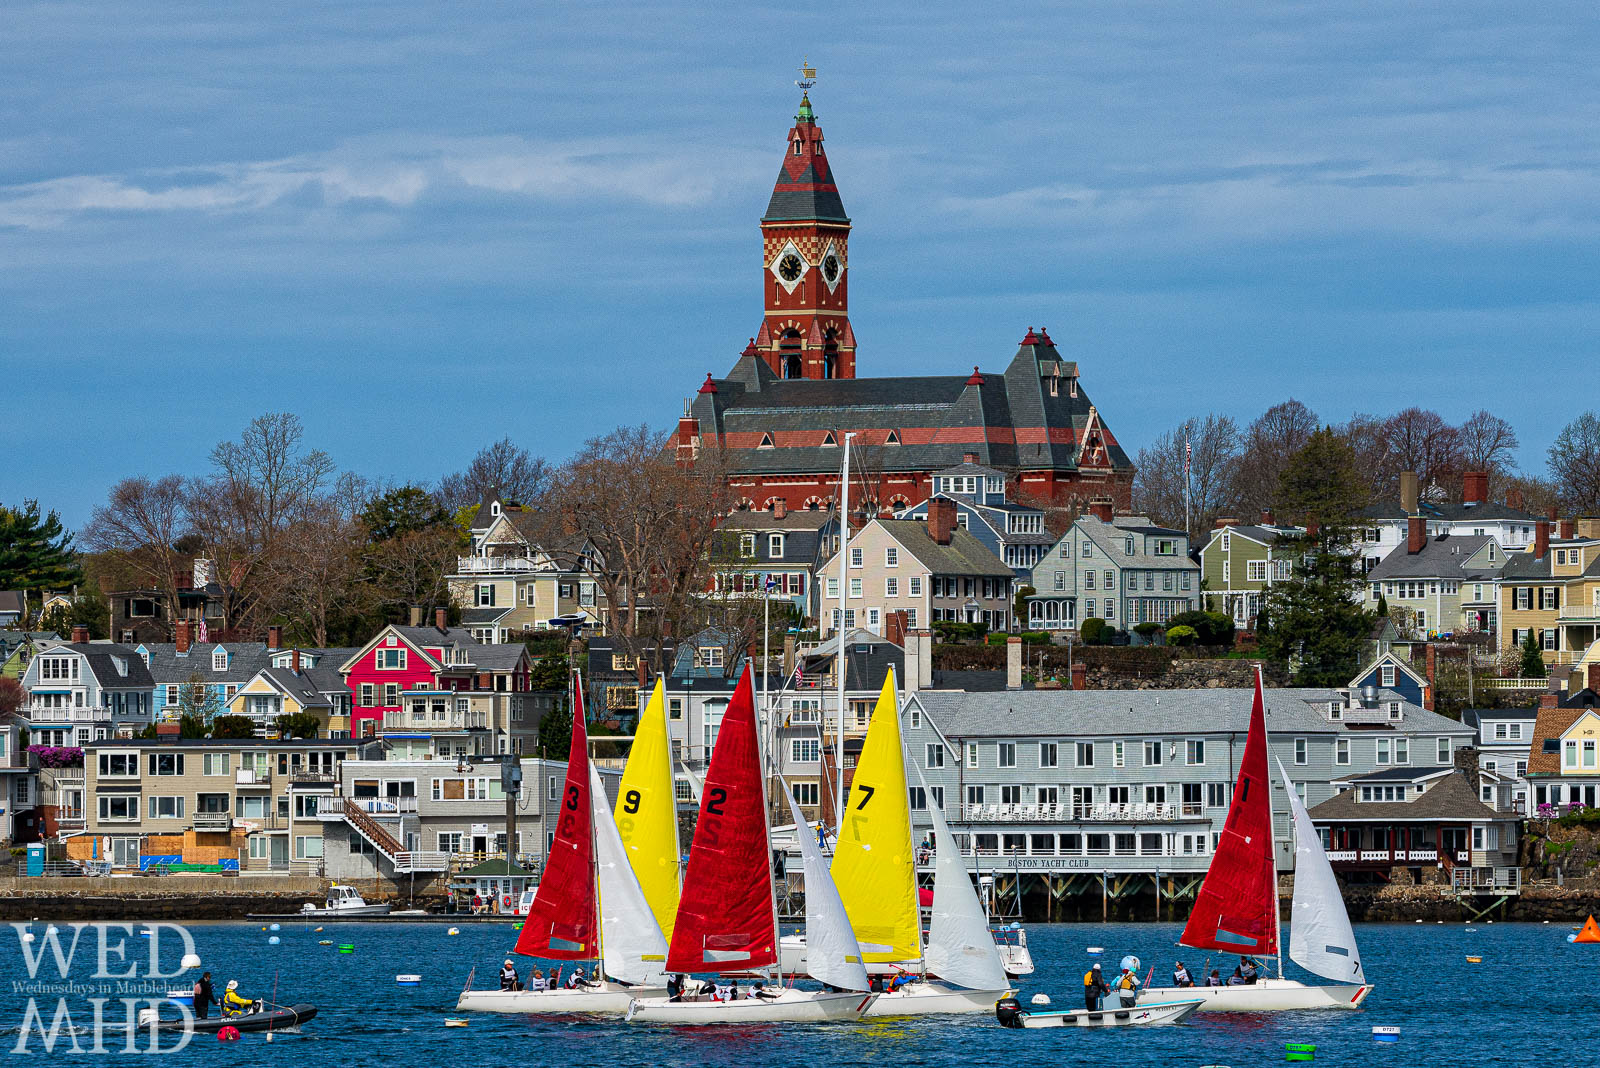 Boats with red and yellow sails compete for the Jackson Cup in front of Abbot Hall and the host Boston Yacht Club